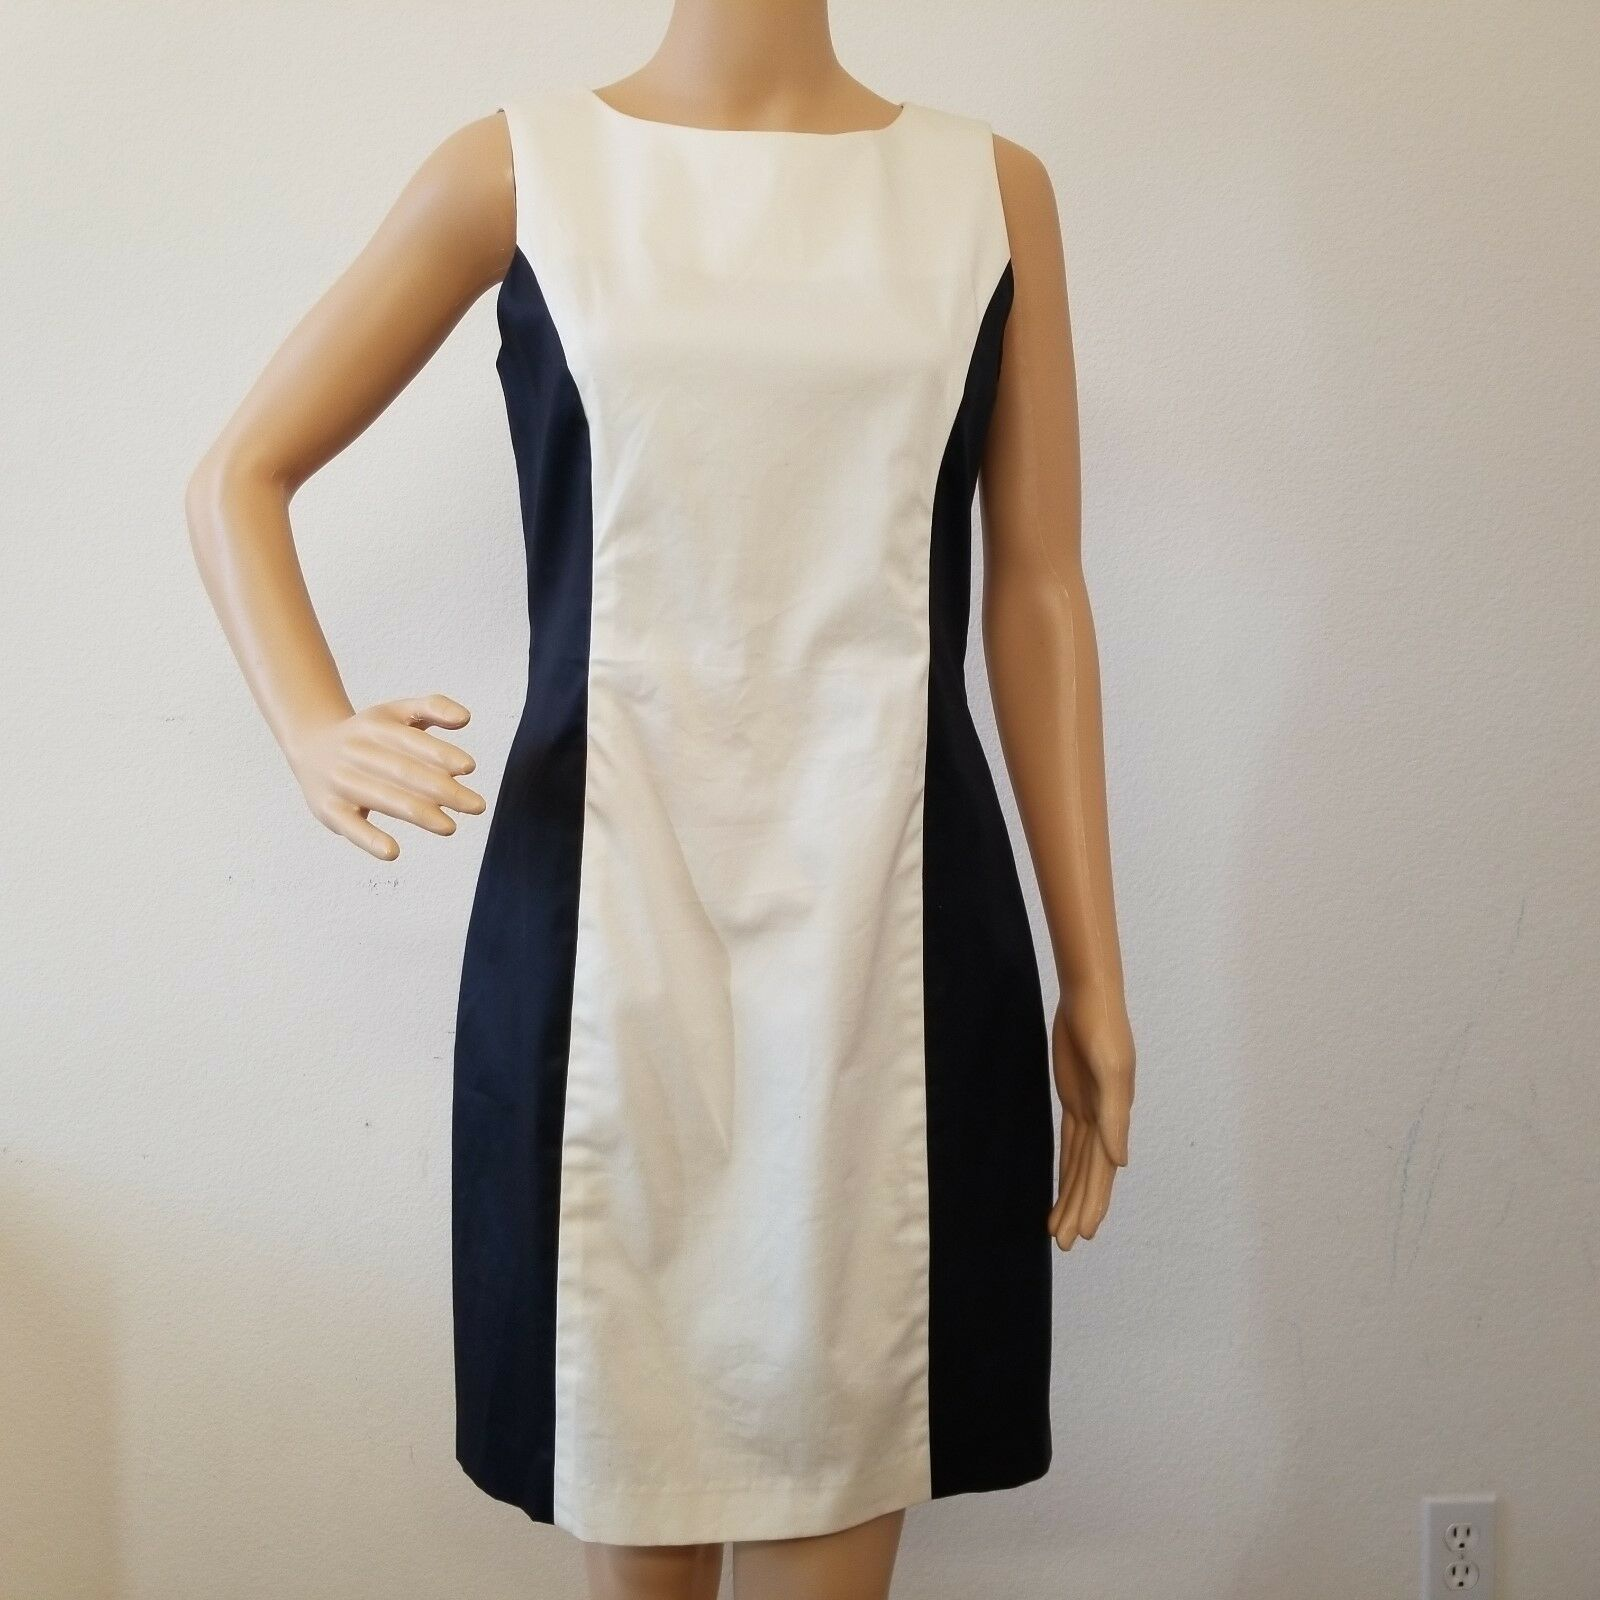 Rag Bone Ivory Navy Sleeveless Sheath Dress Size 8 XP